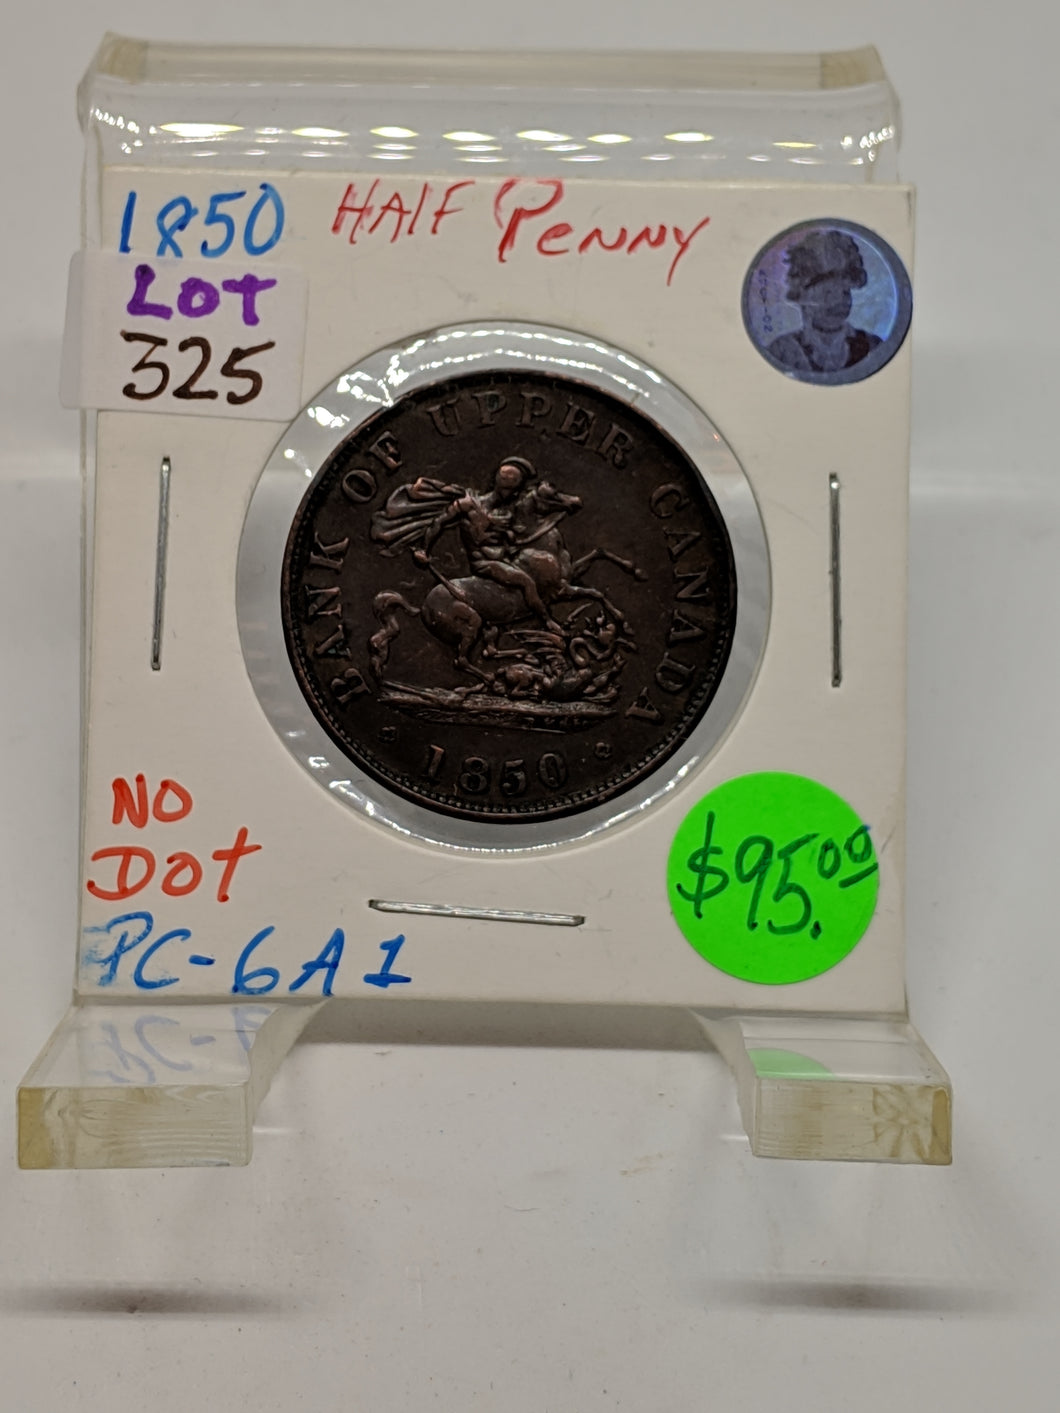 1850 One Half Penny Token No Dot- PC-6A1-Lot:325